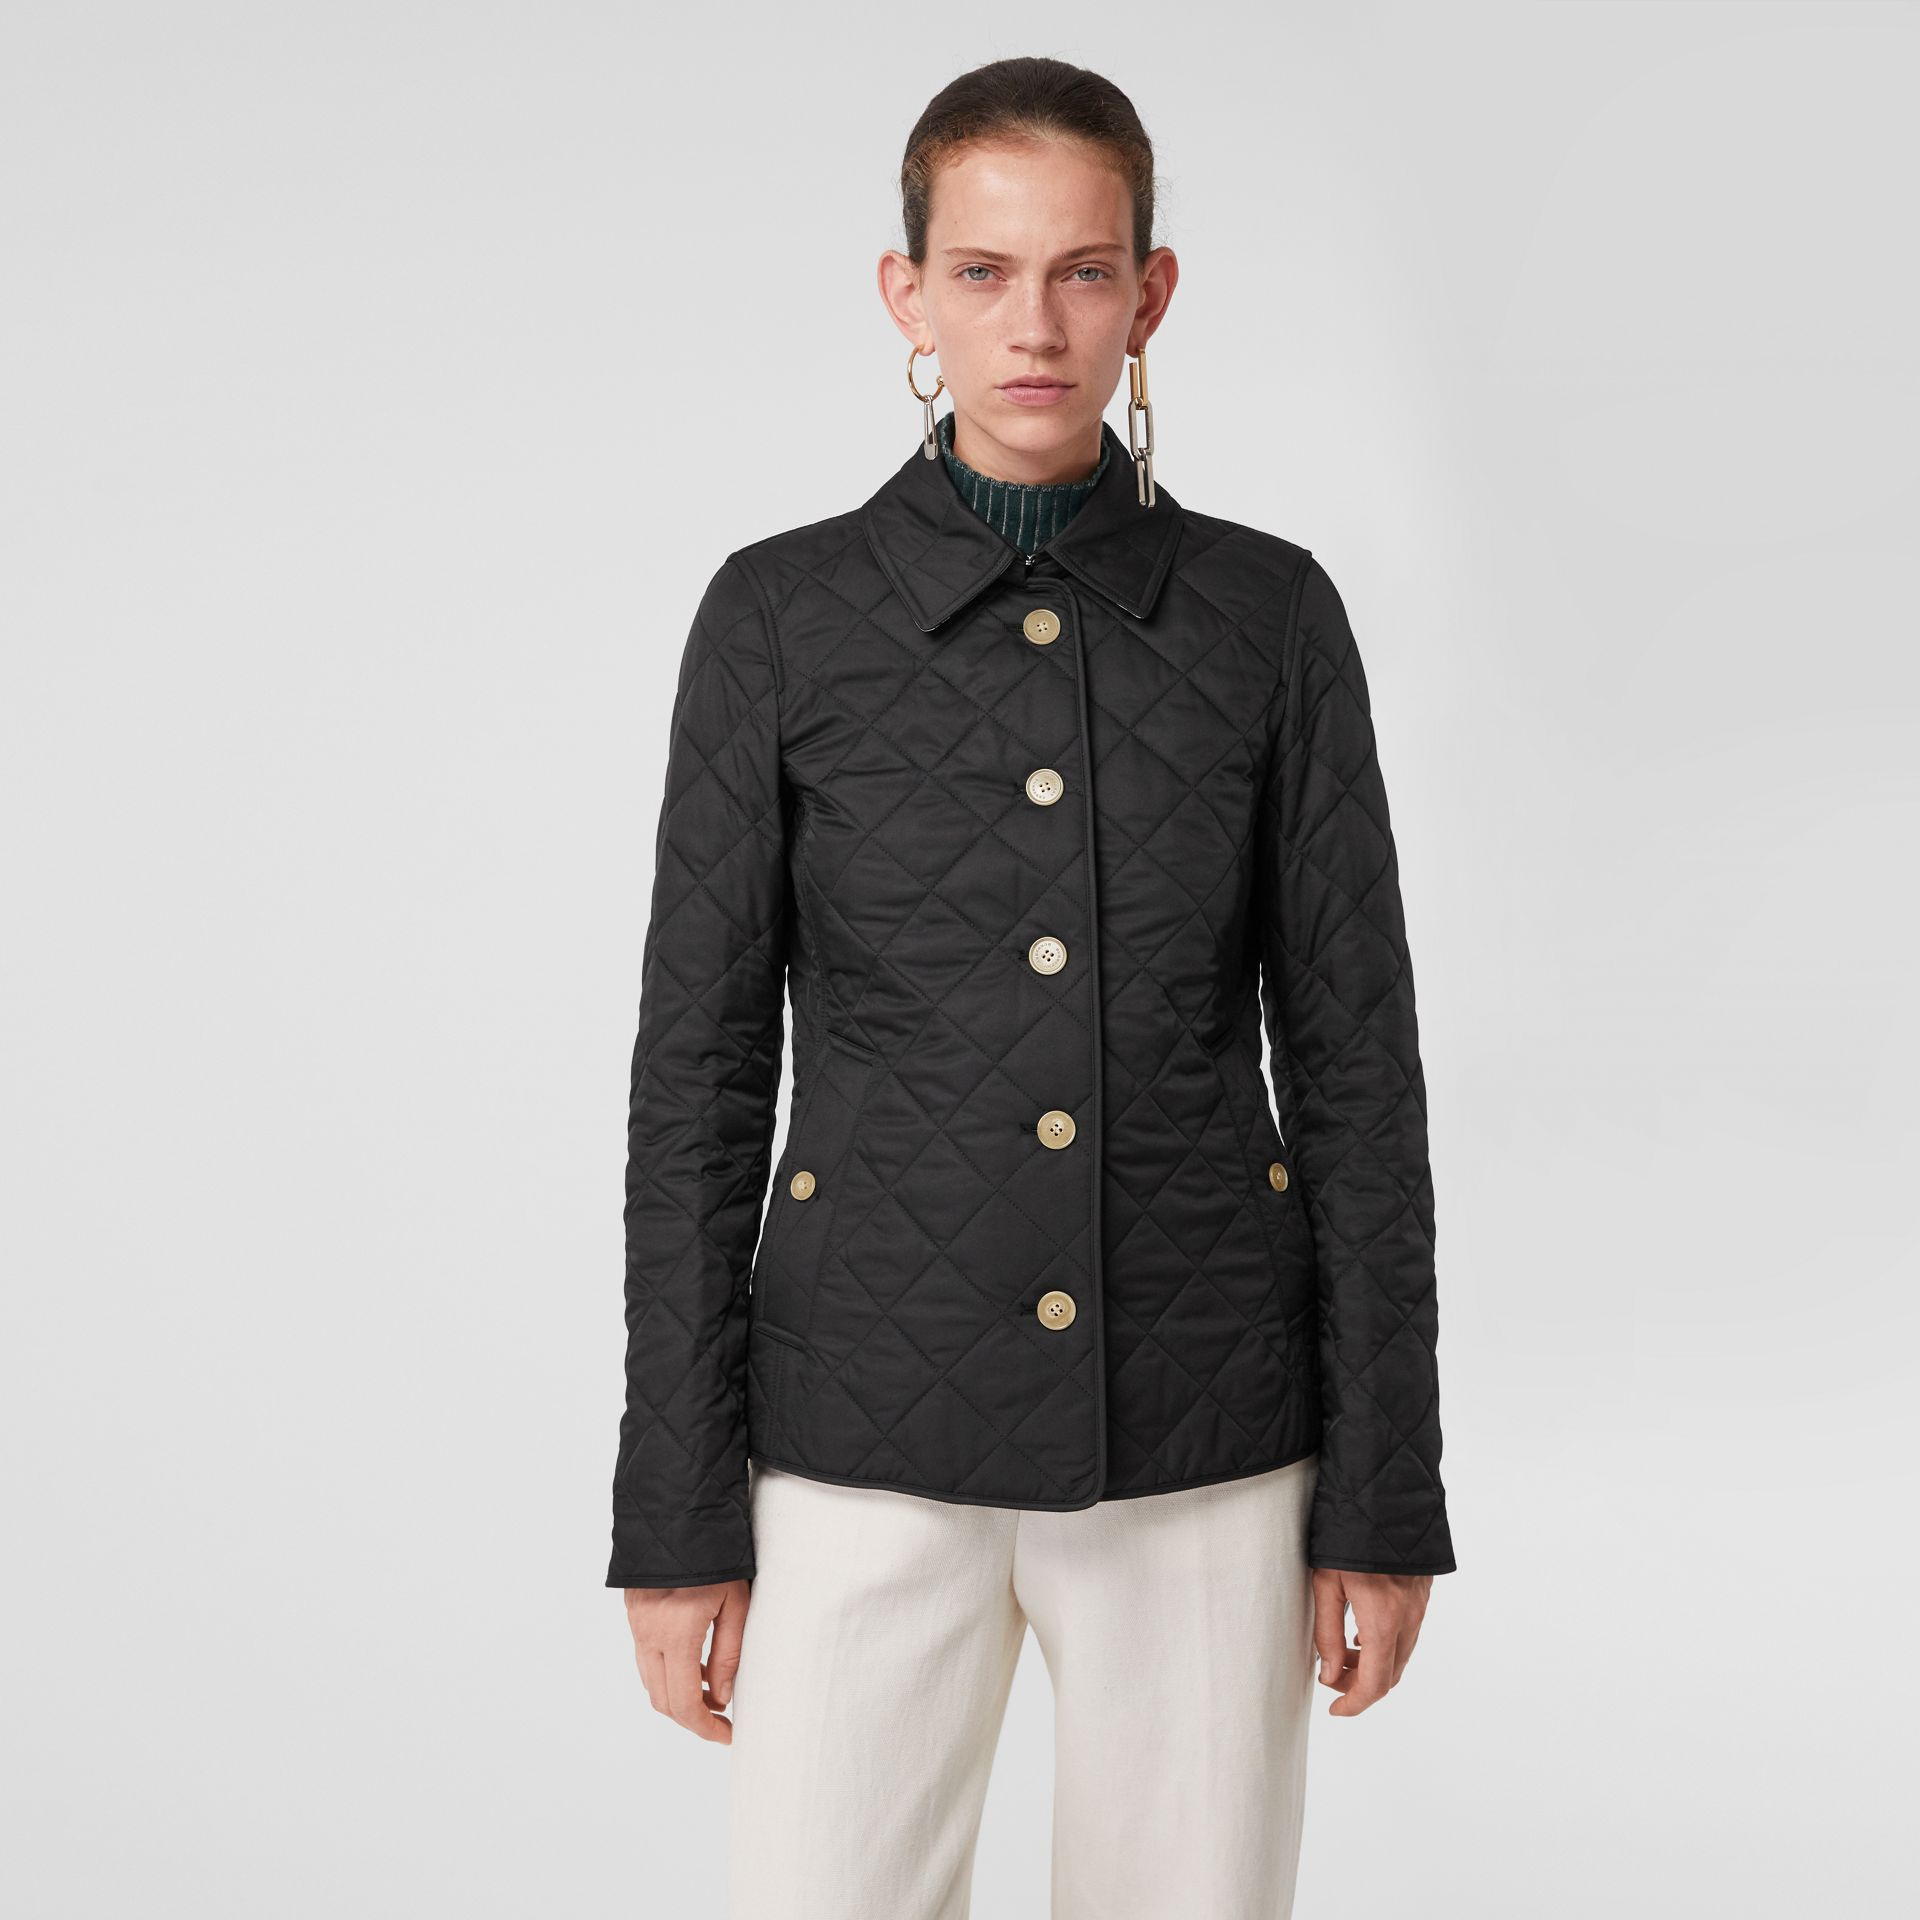 Diamond Quilted Jacket in Black - Women | Burberry Hong Kong S.A.R - gallery image 4